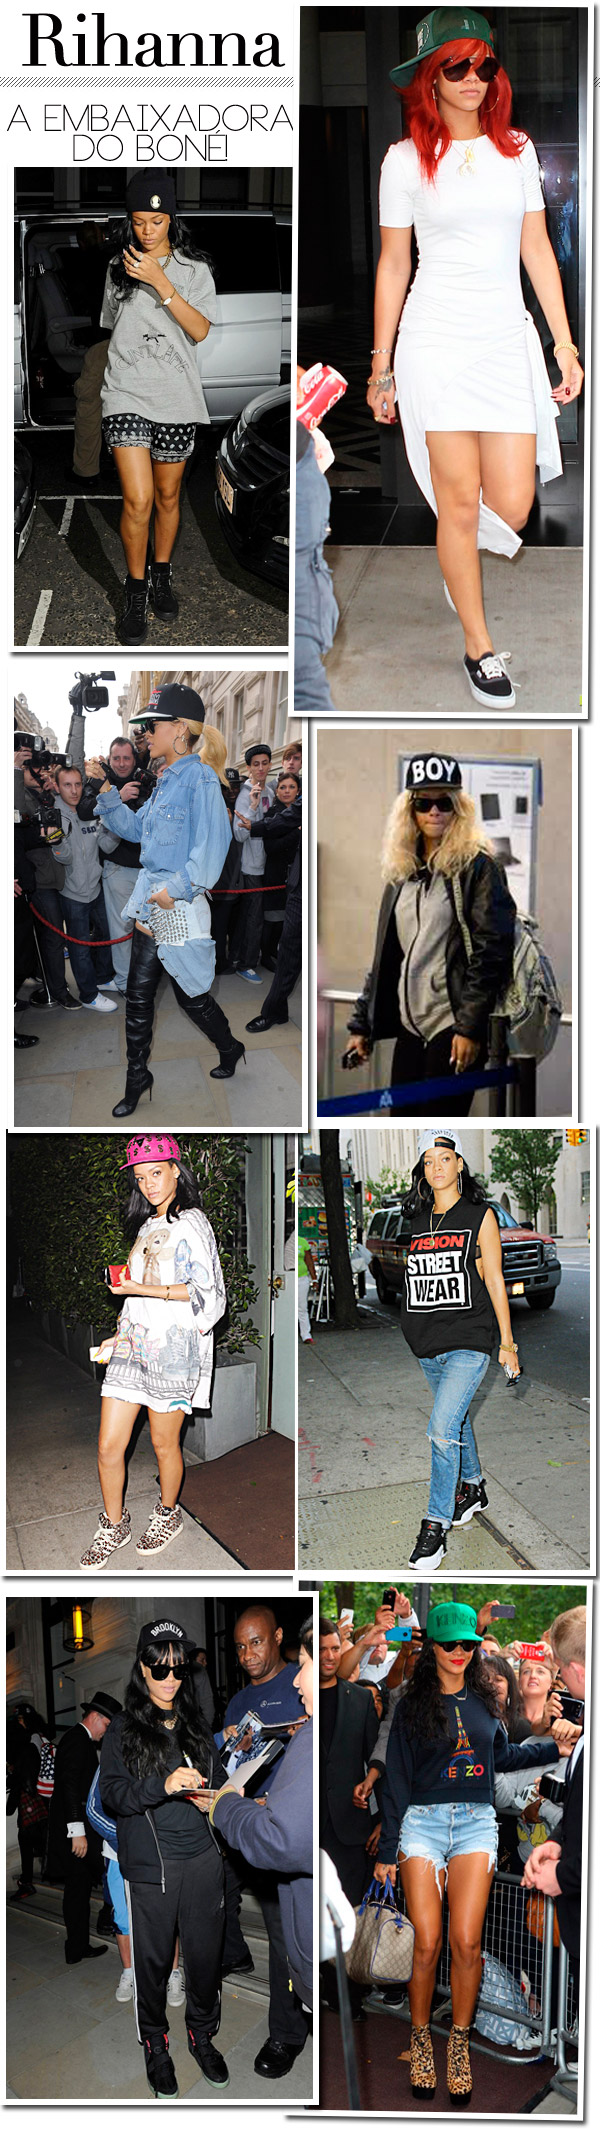 rihanna-cap-fashion